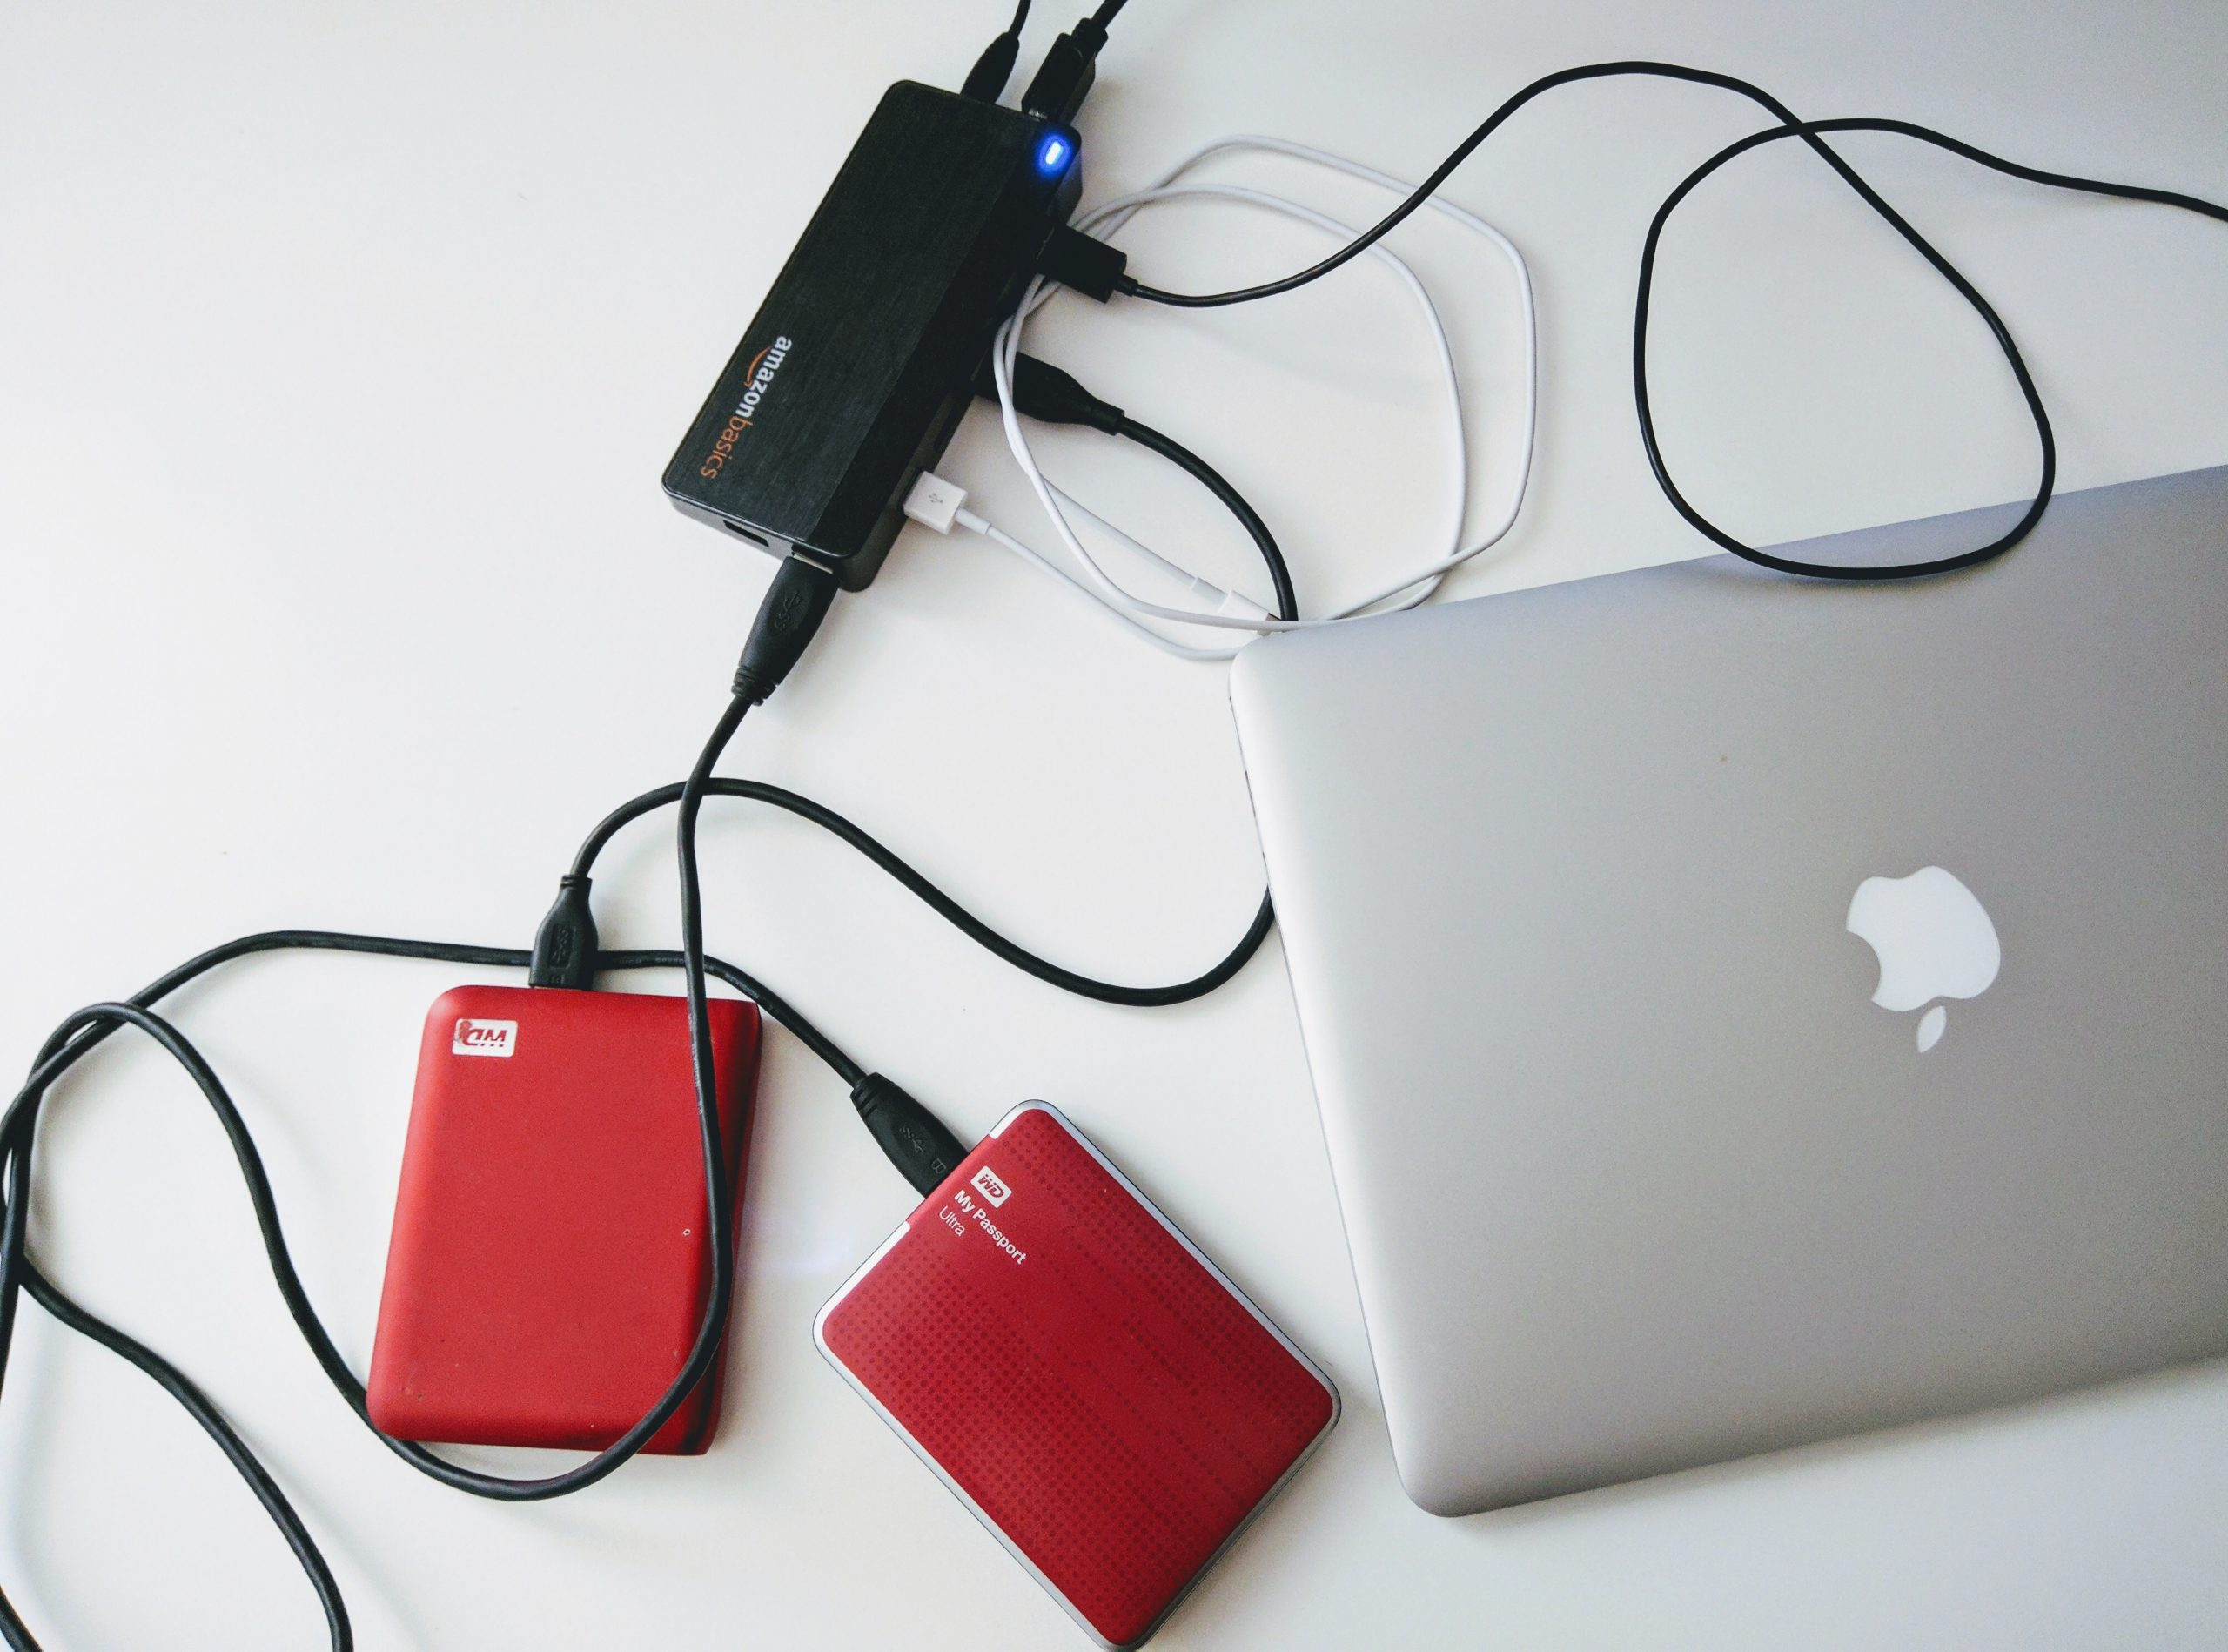 external hard drives with wifi/Bluetooth are still rare/clunky/expensive